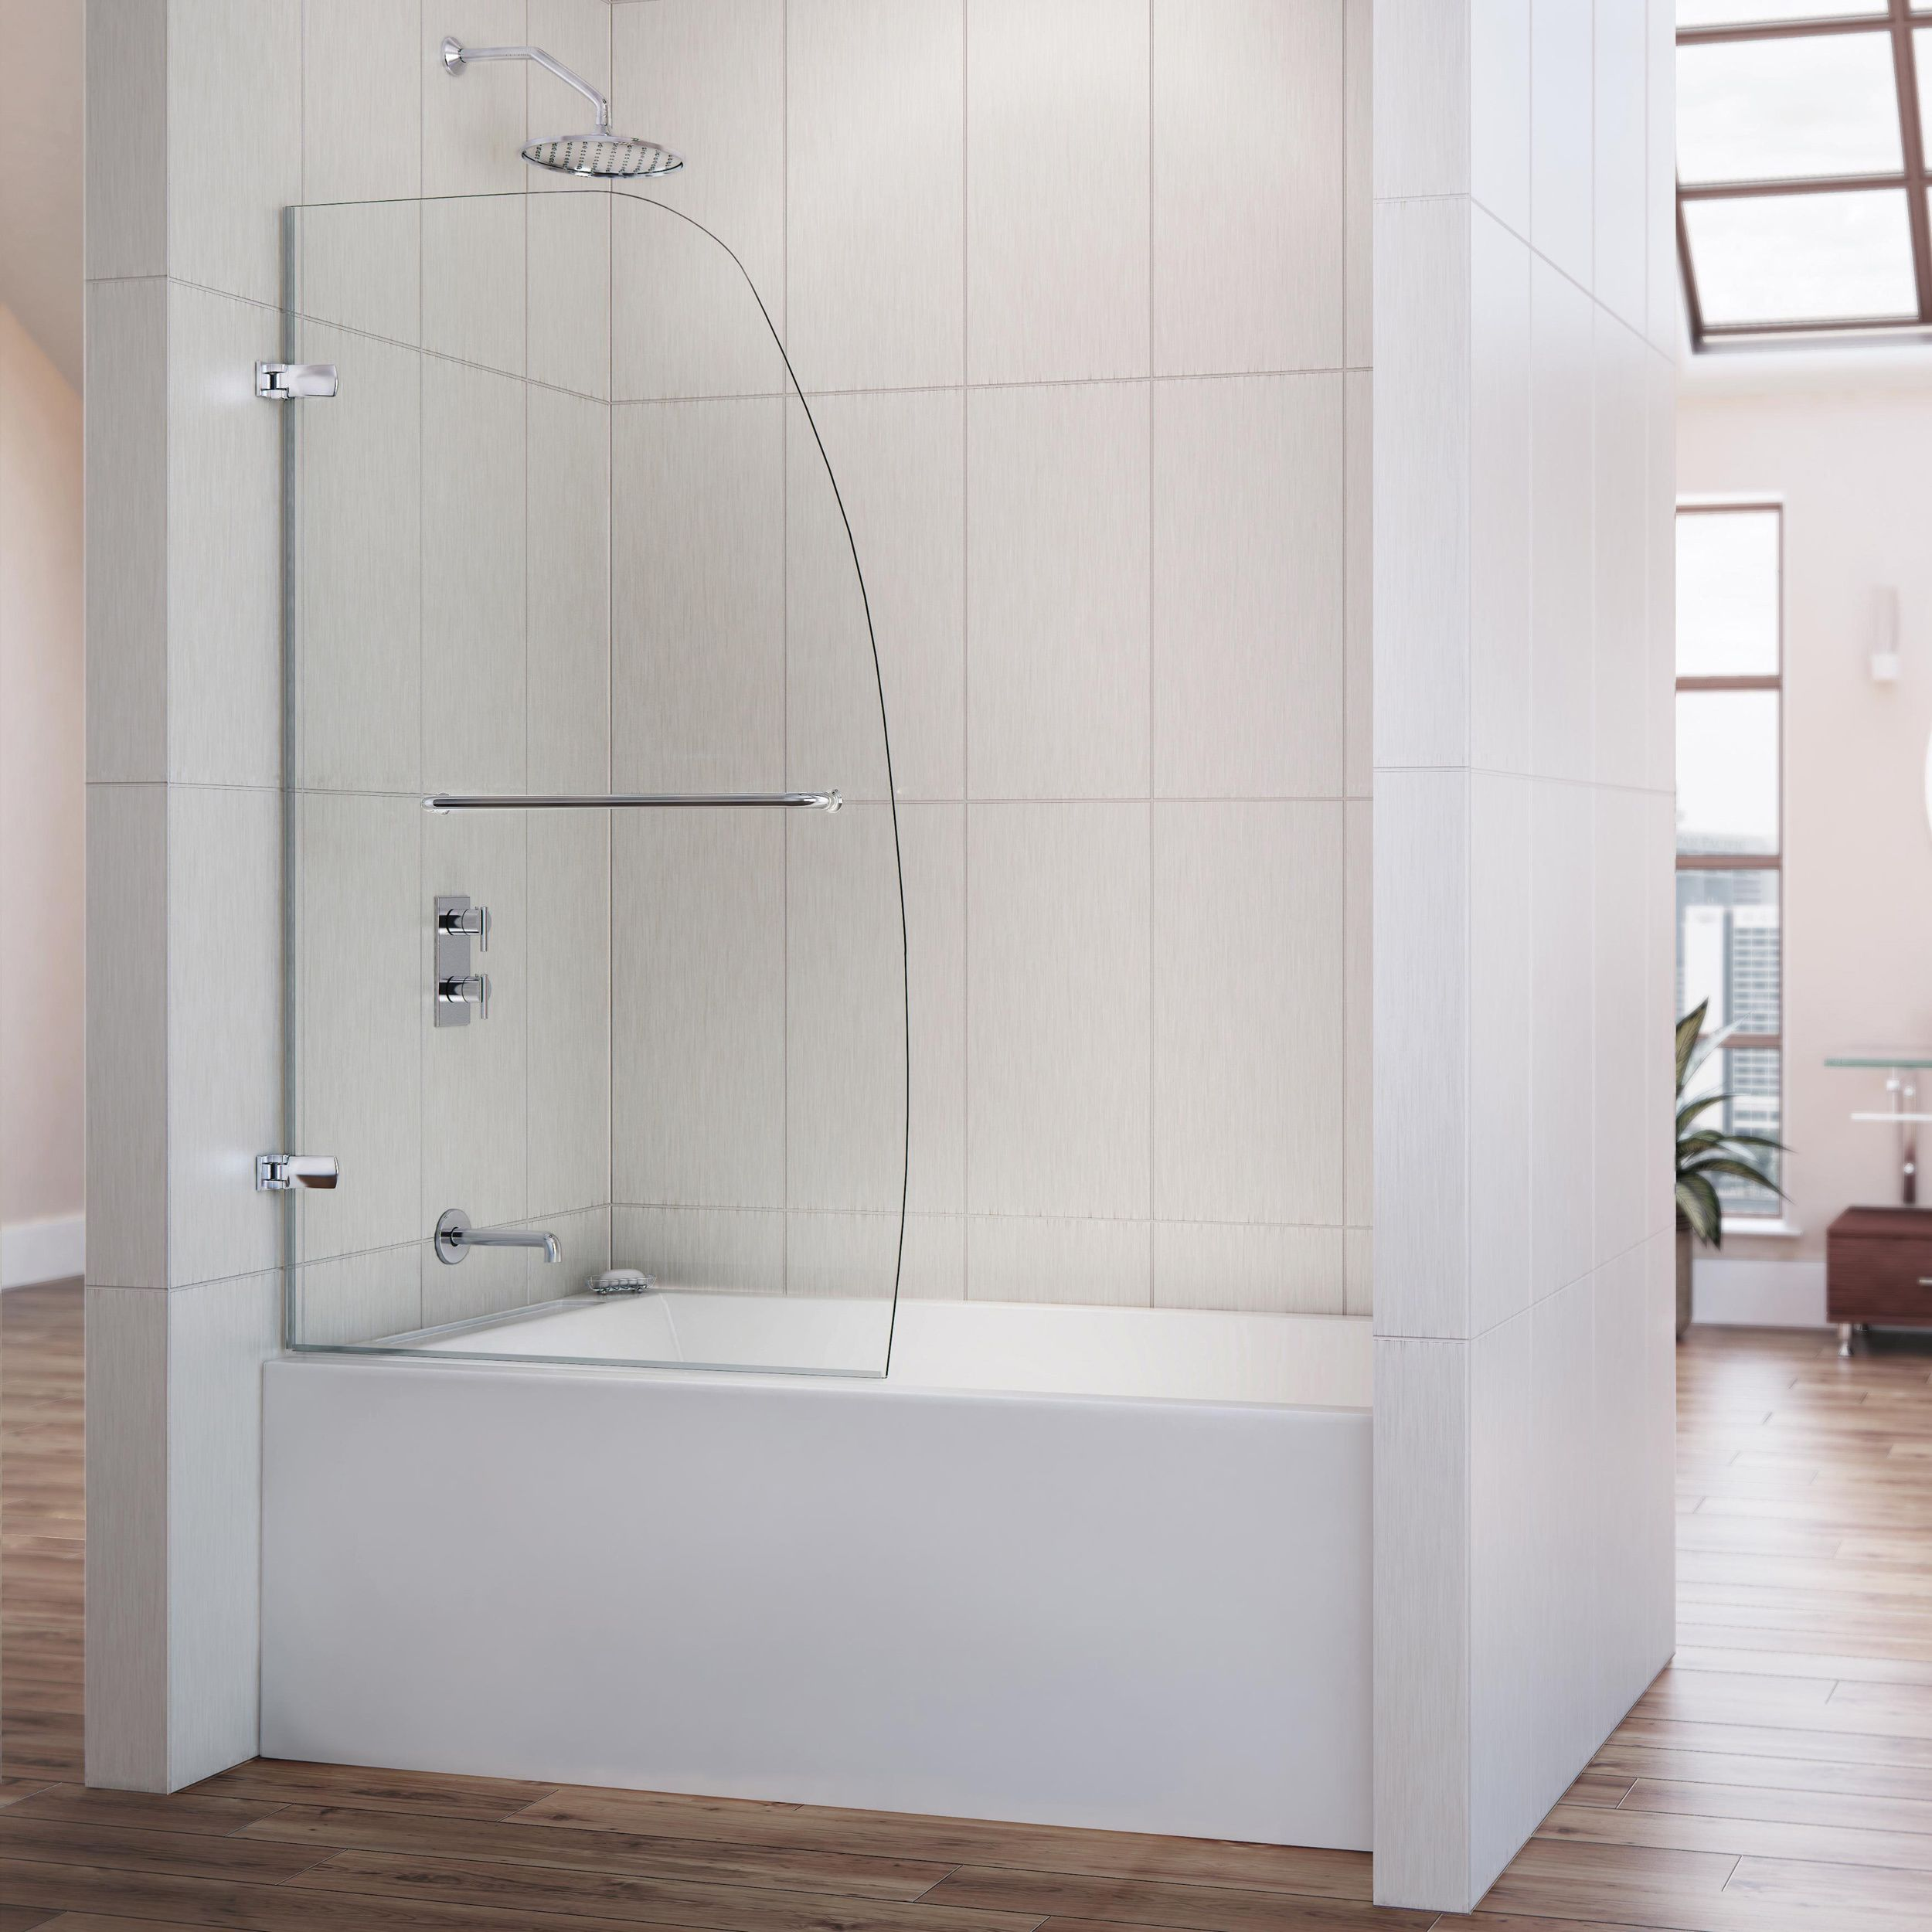 DreamLine Aqua Uno 34 inch Frameless Hinged Tub Door by DreamLine